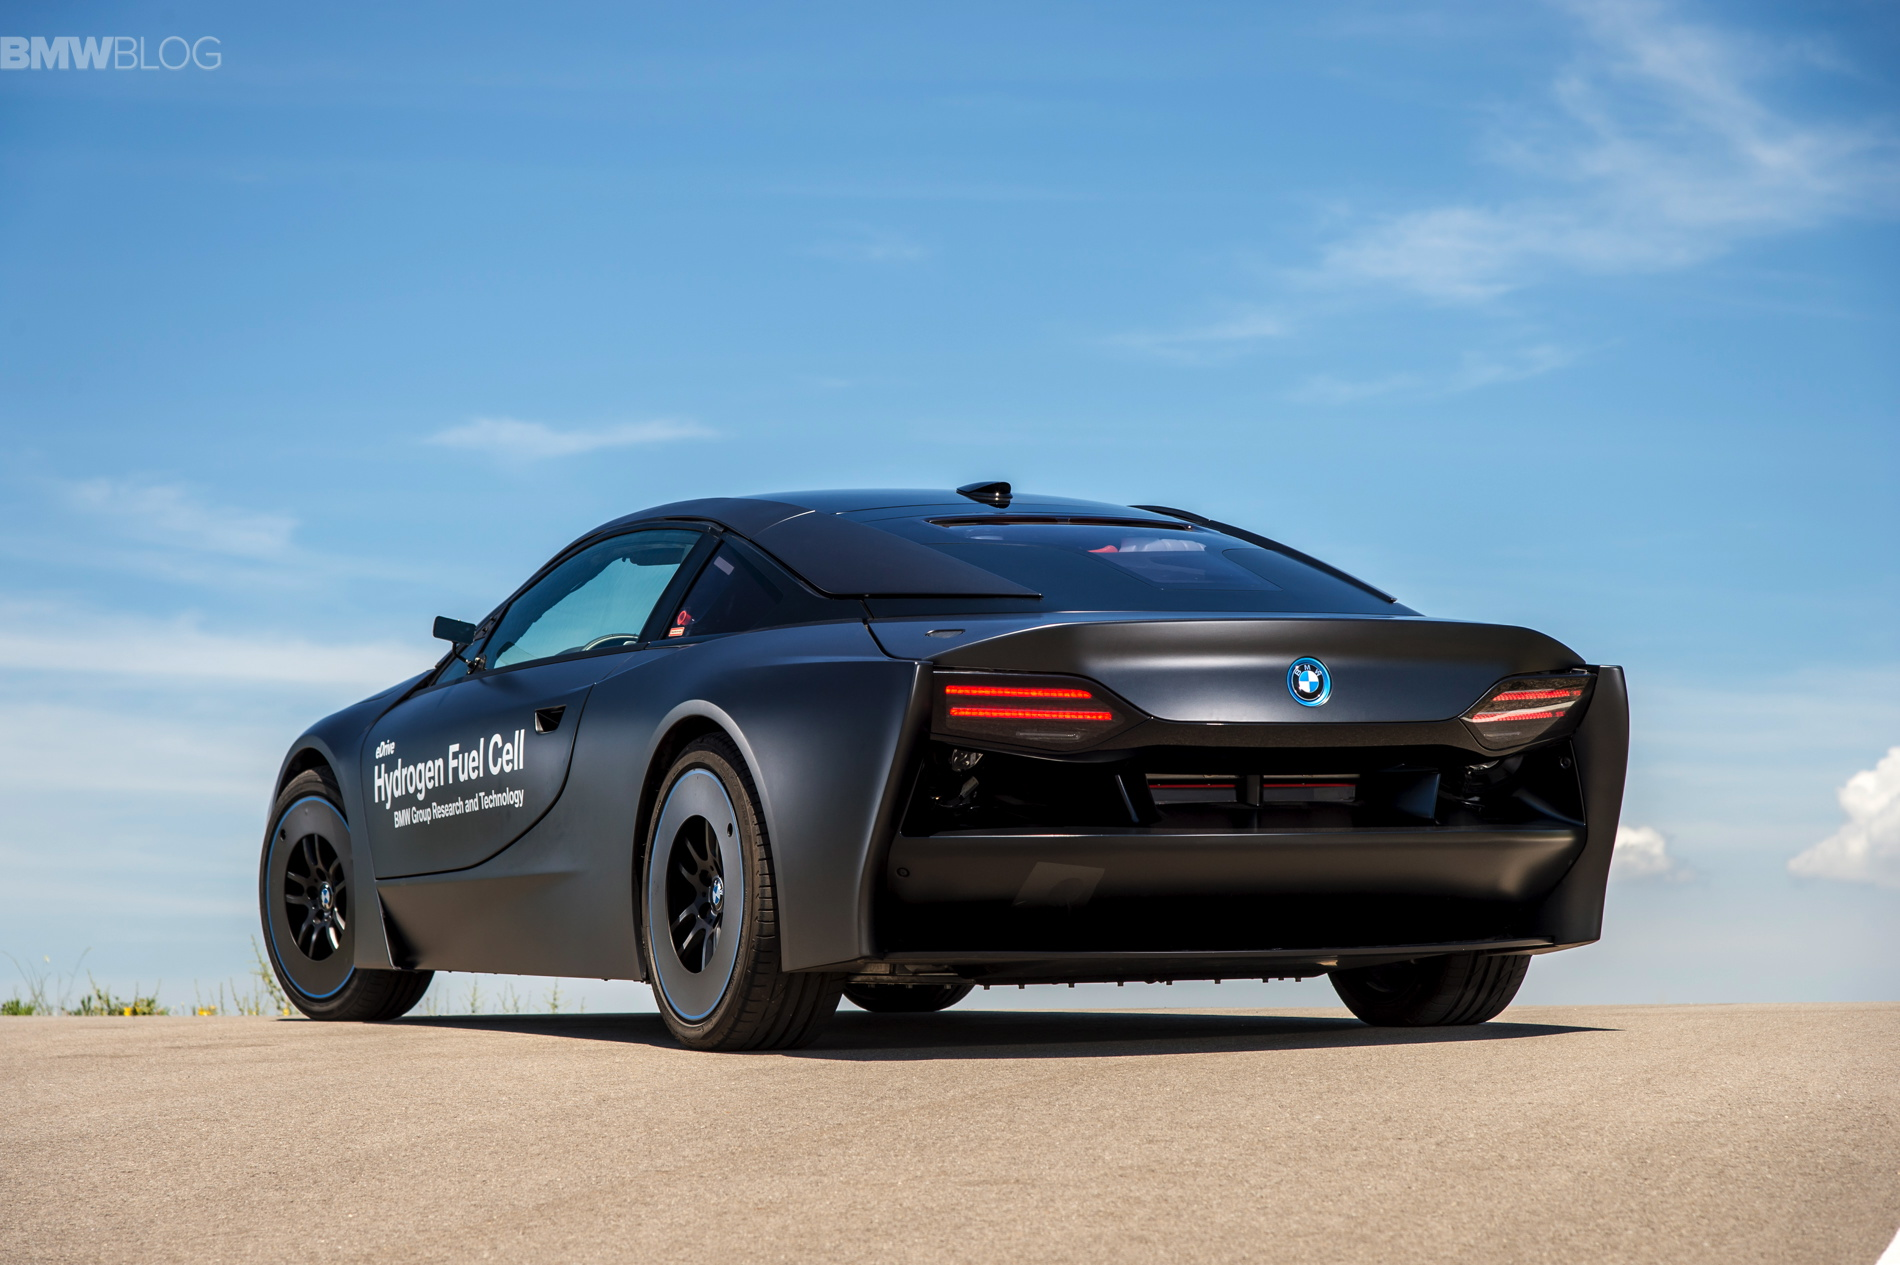 BMW i8 hydrogen fuel cell images 25